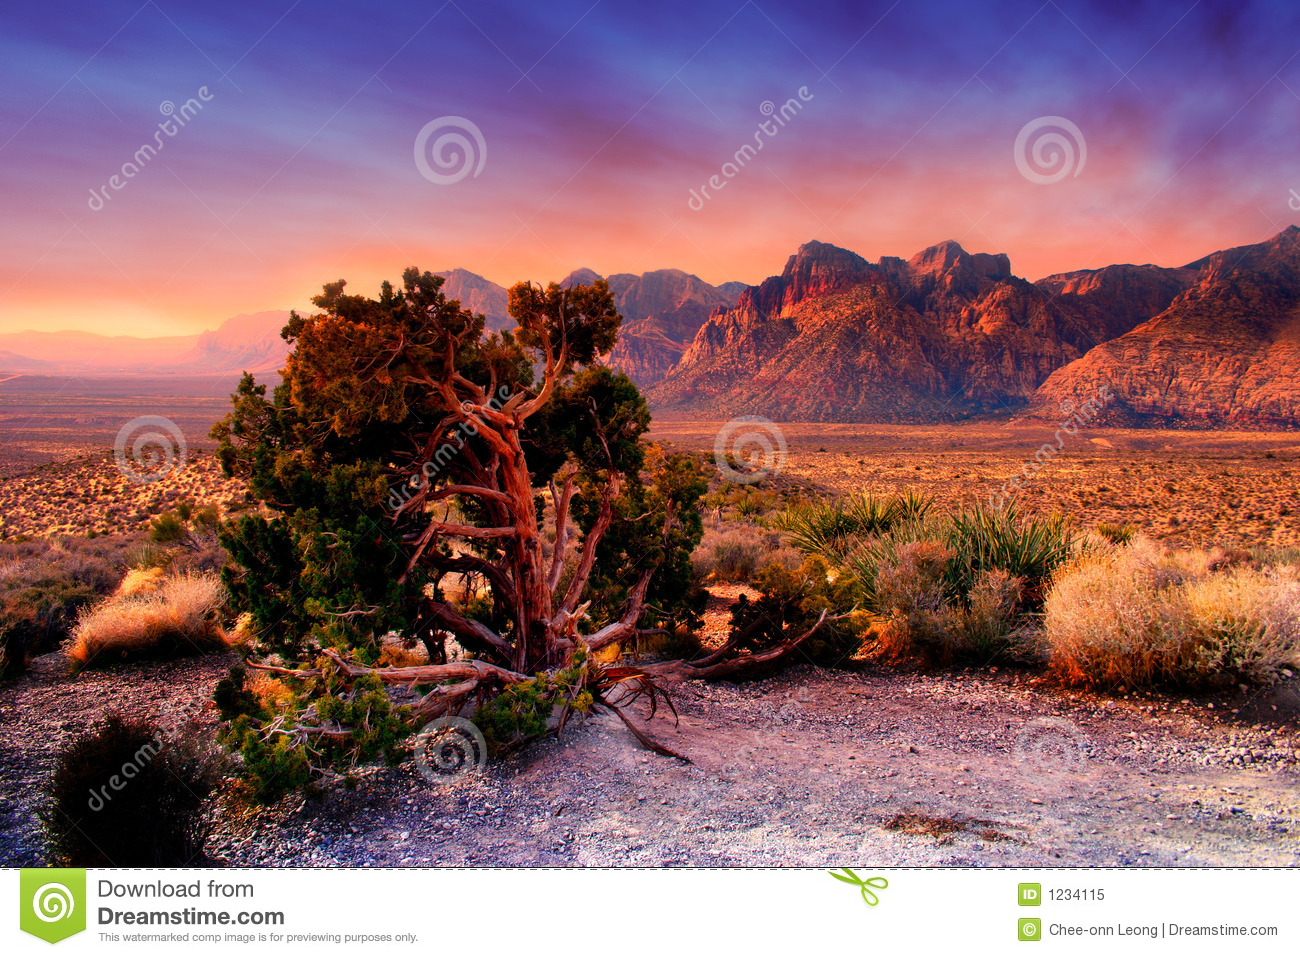 Red Rock Canyon clipart #18, Download drawings